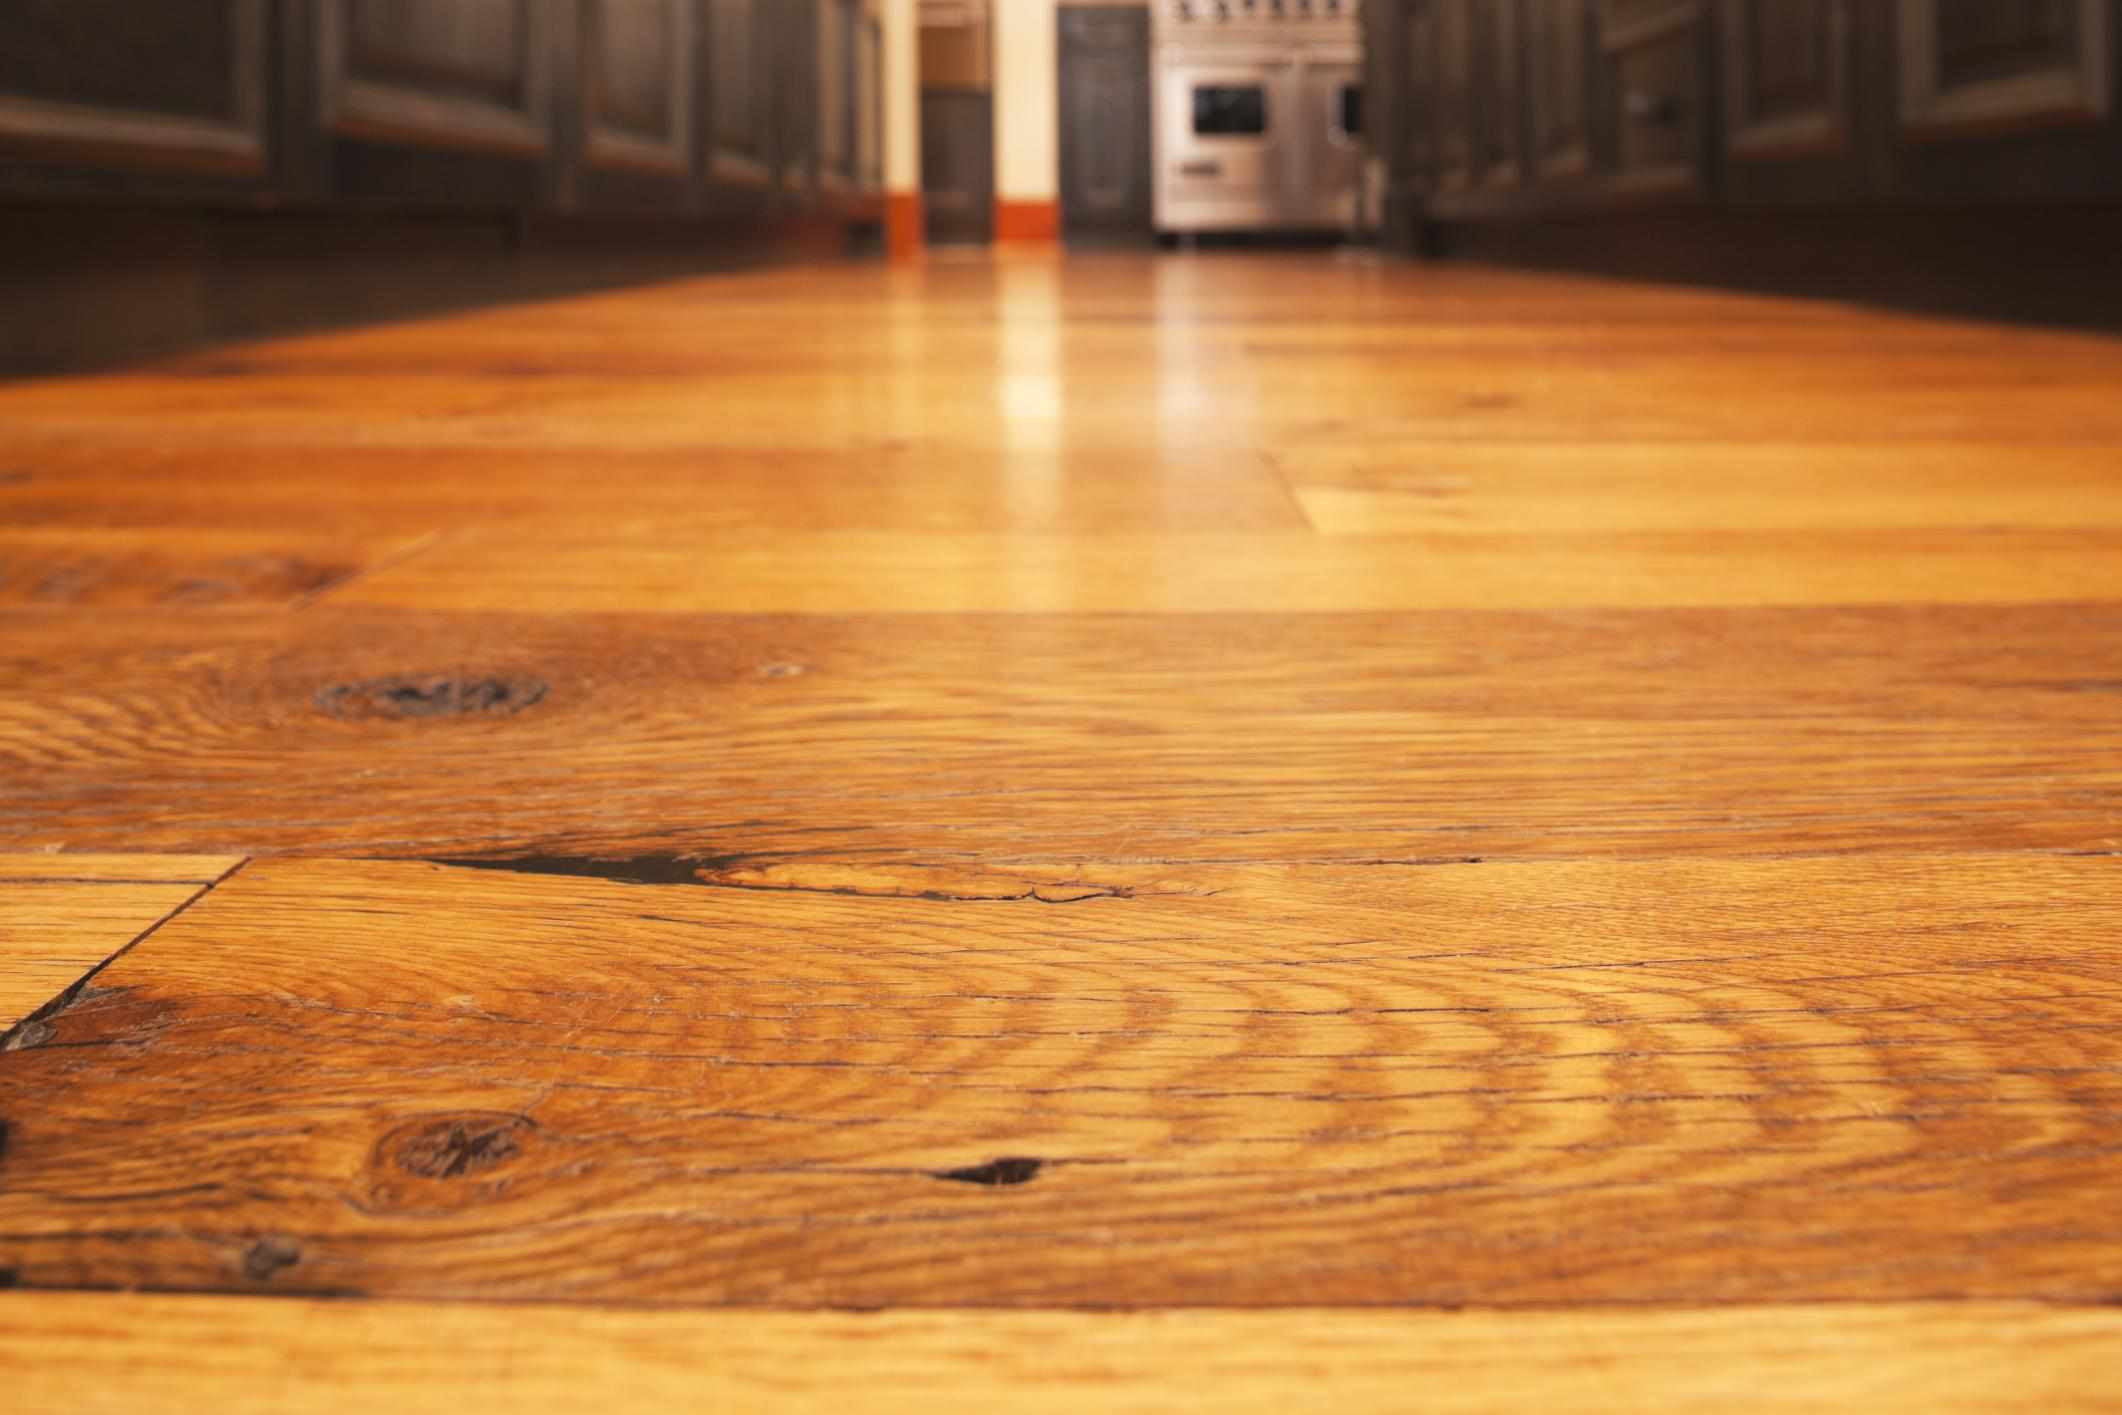 How to Sand Hardwood Floors Of How to Sand Hardwood Floors Inside 185126347 56a49f3d5f9b58b7d0d7e154